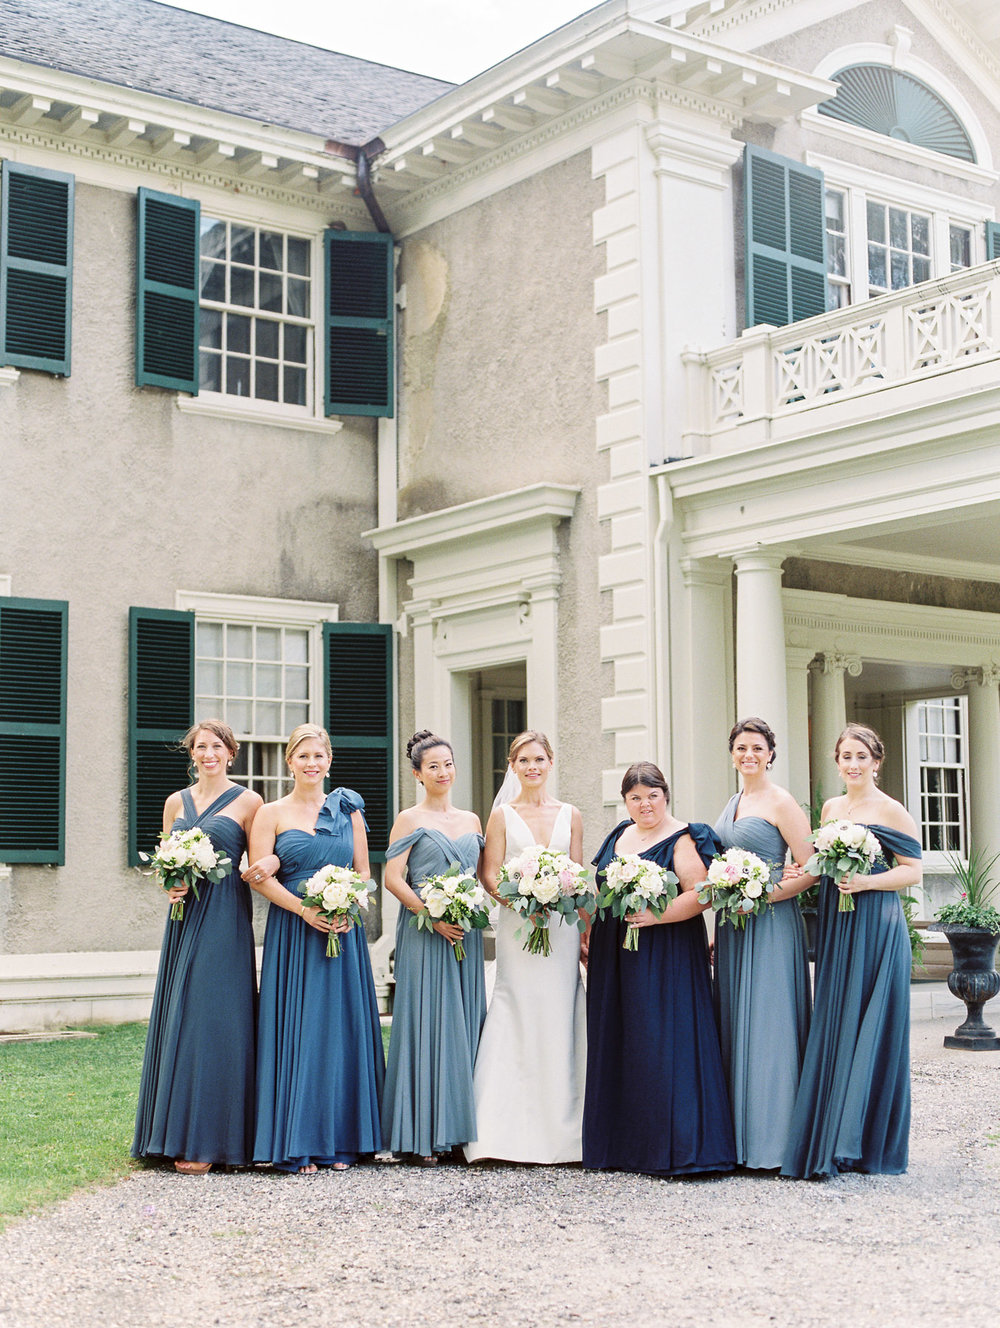 Manchester Vermont Wedding Bridesmaids in Shades of Blue Dresses